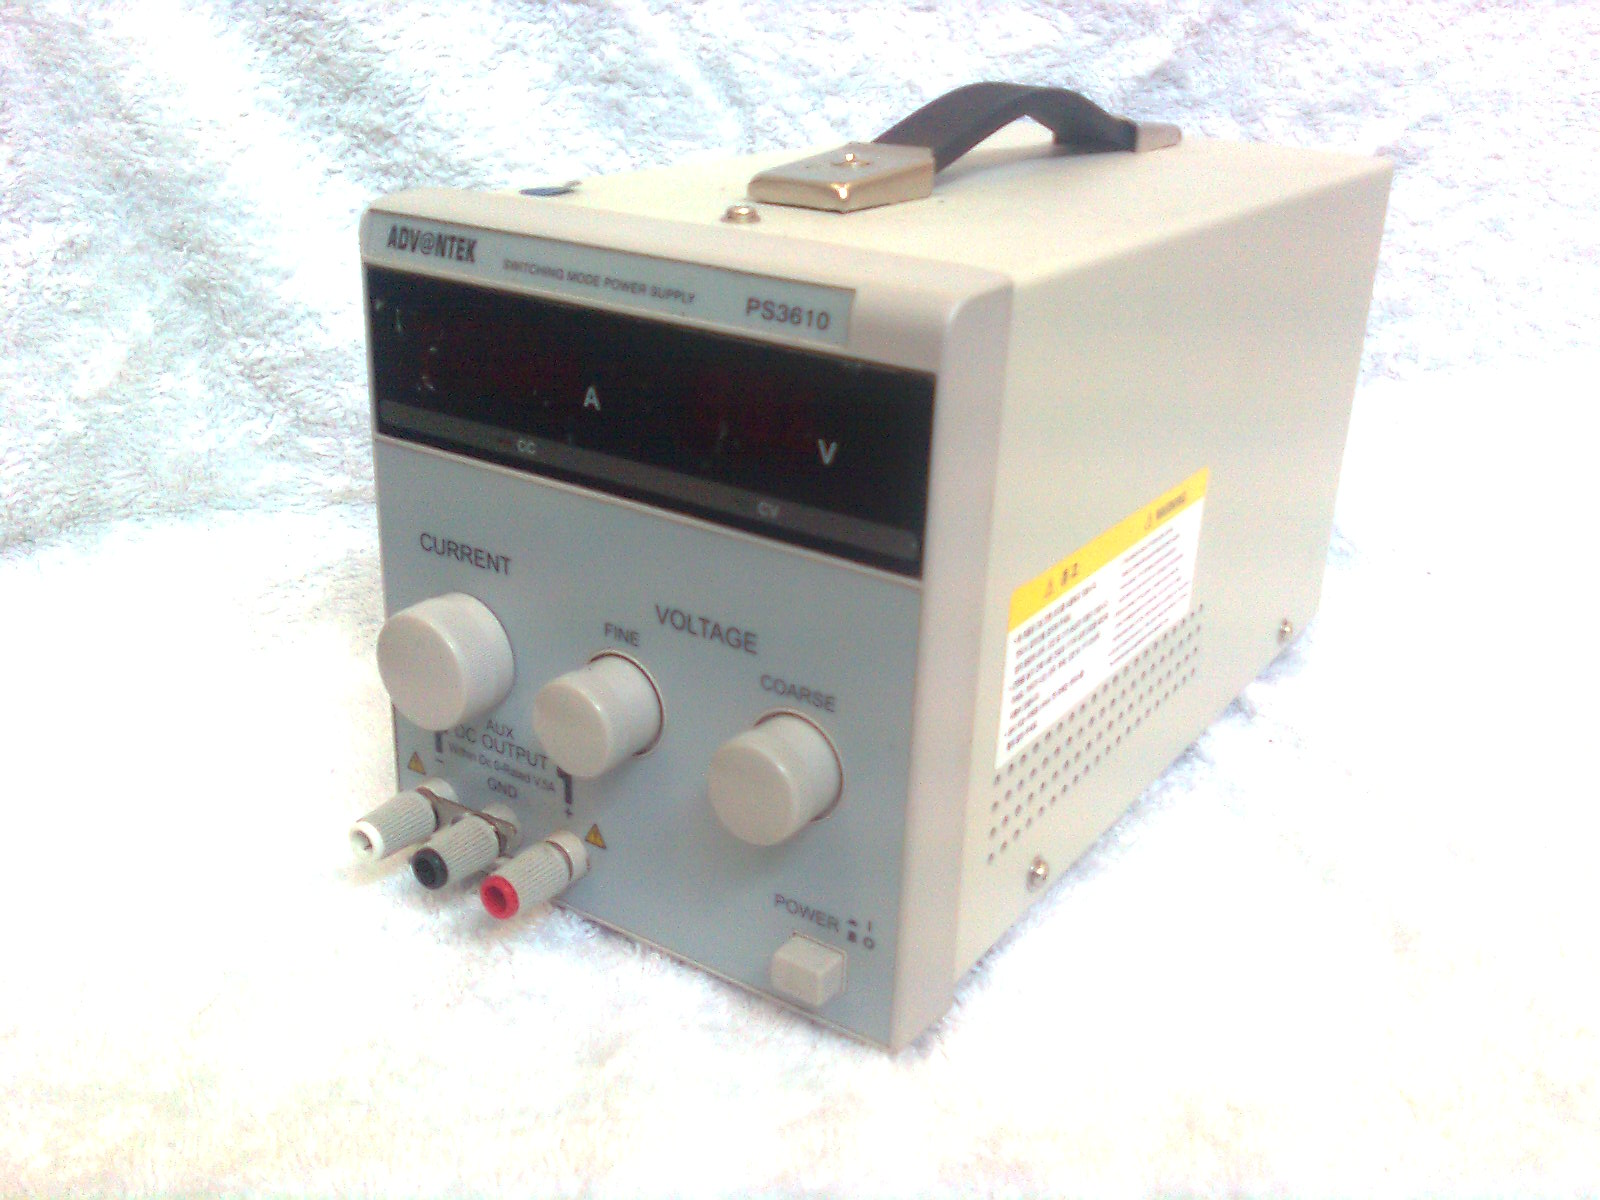 3610-0-T001 : Power Supply - Regulated, 0 > 36Vdc, 10A Image